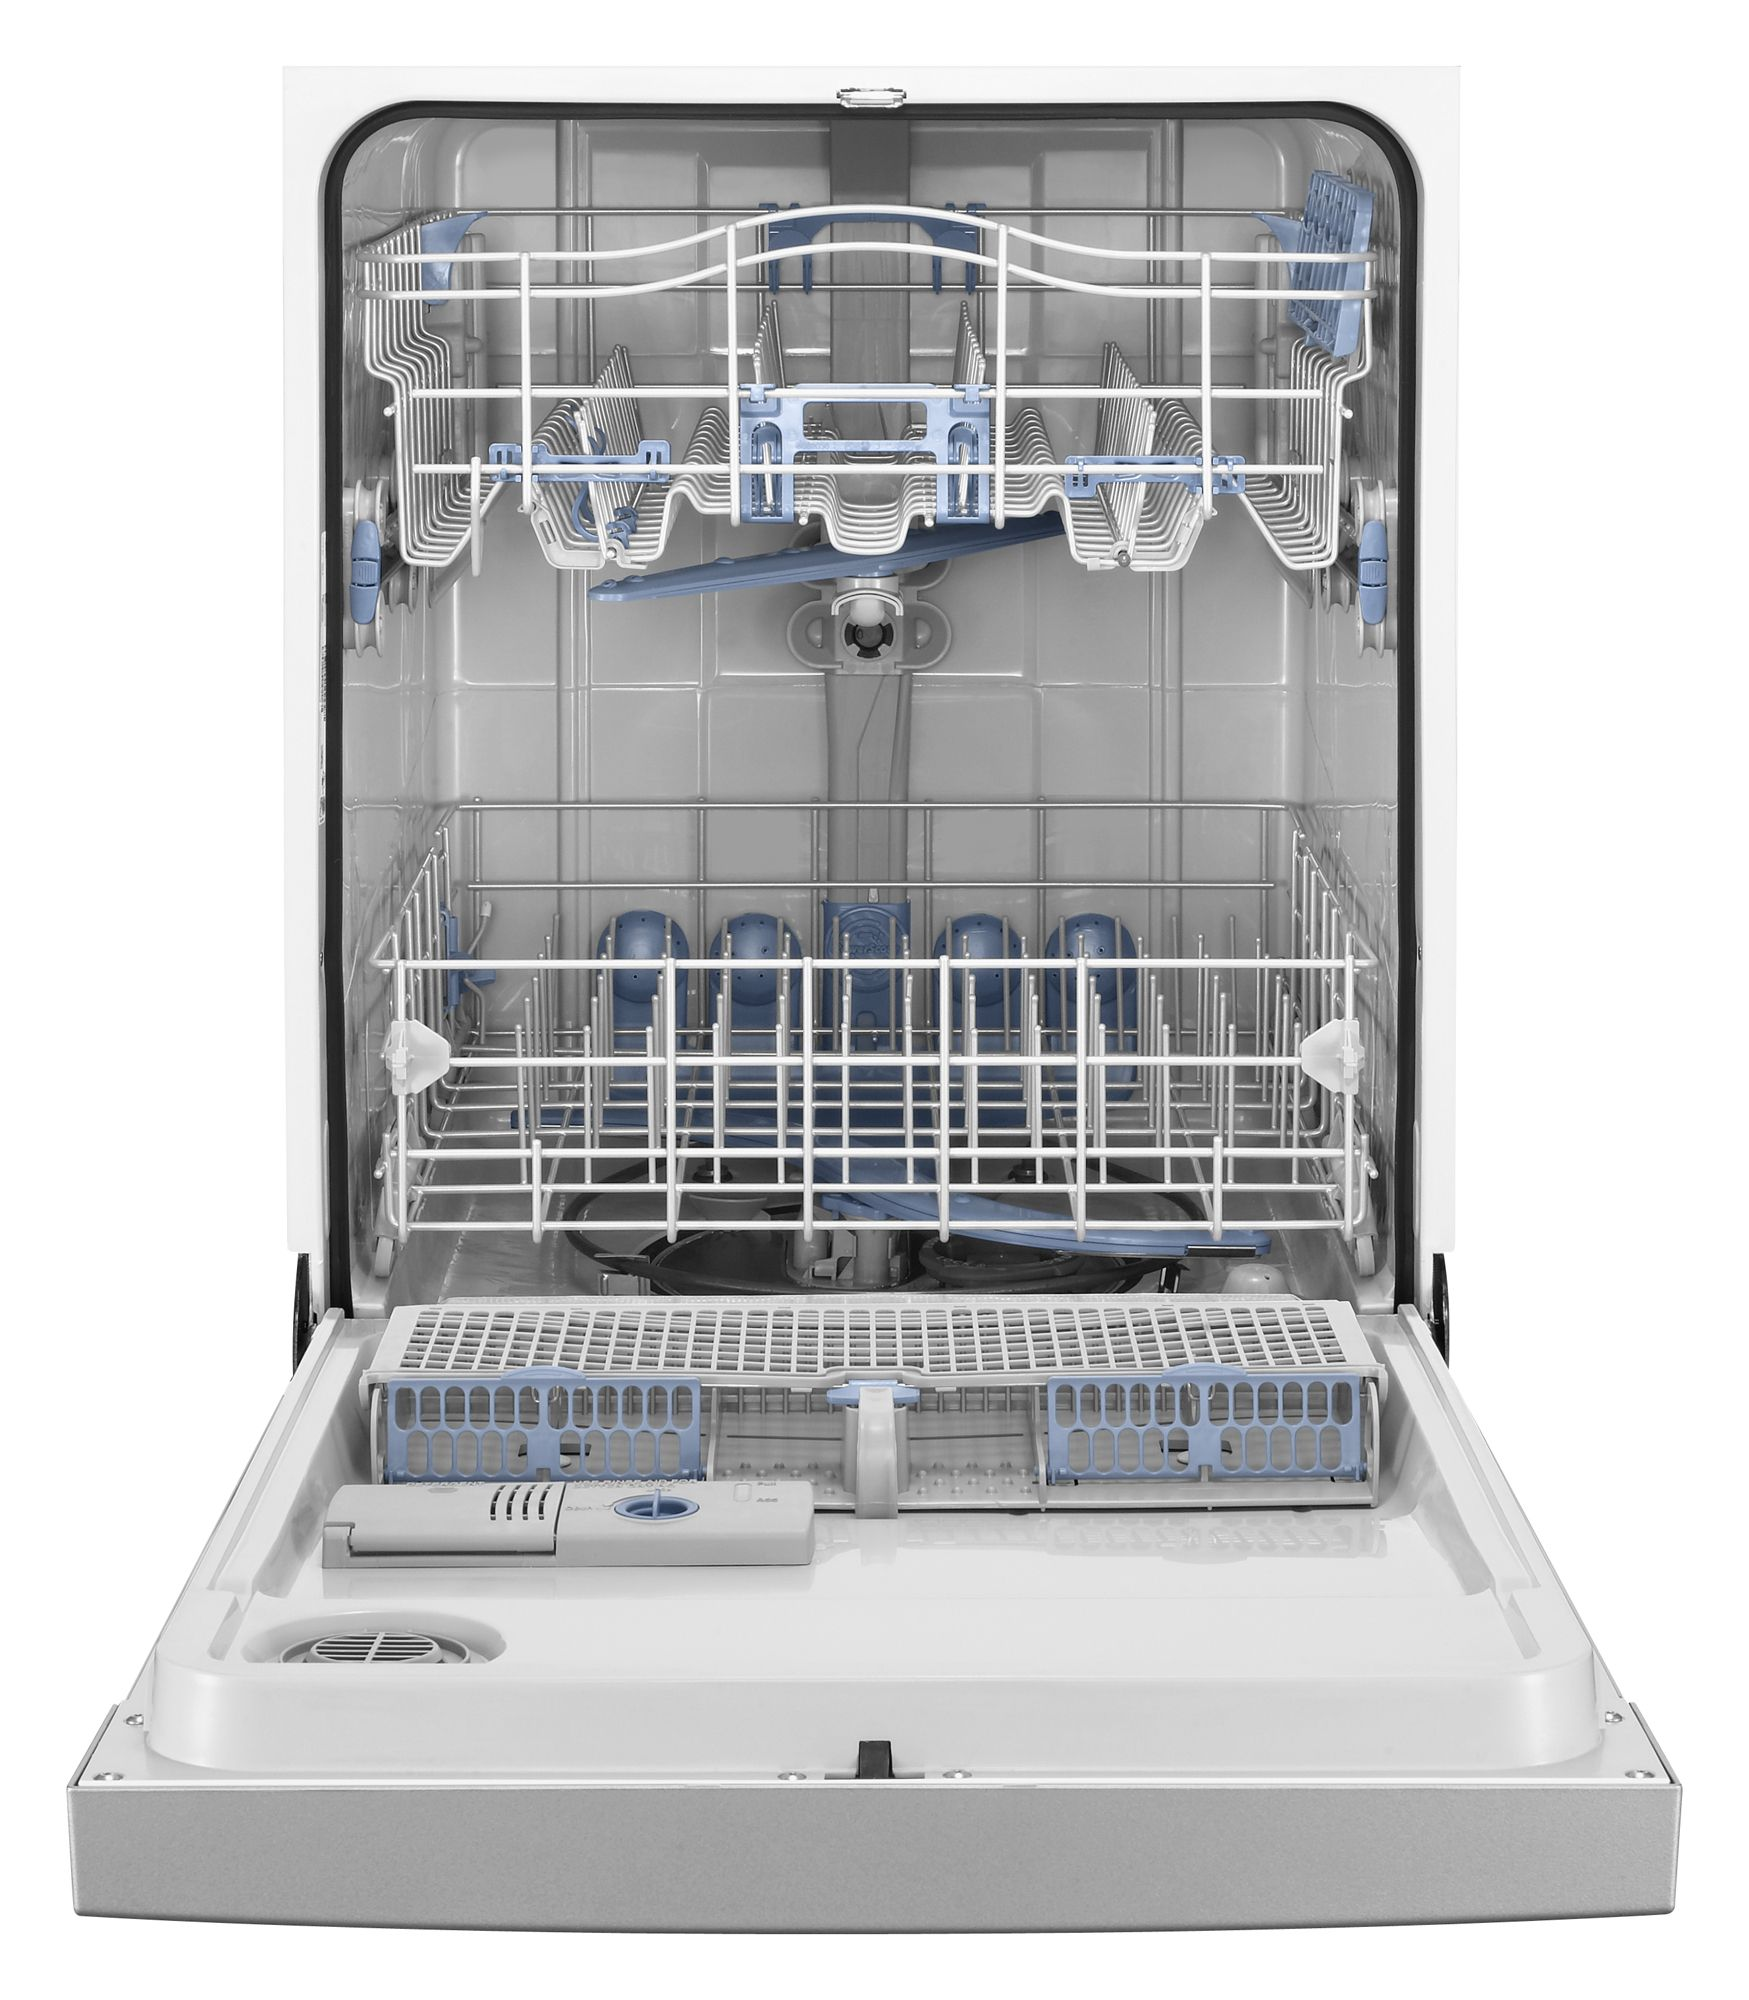 Whirlpool Gold Gold 24 in. Built-In Dishwasher with Resource Saver™ Wash System (GU2800XTV)